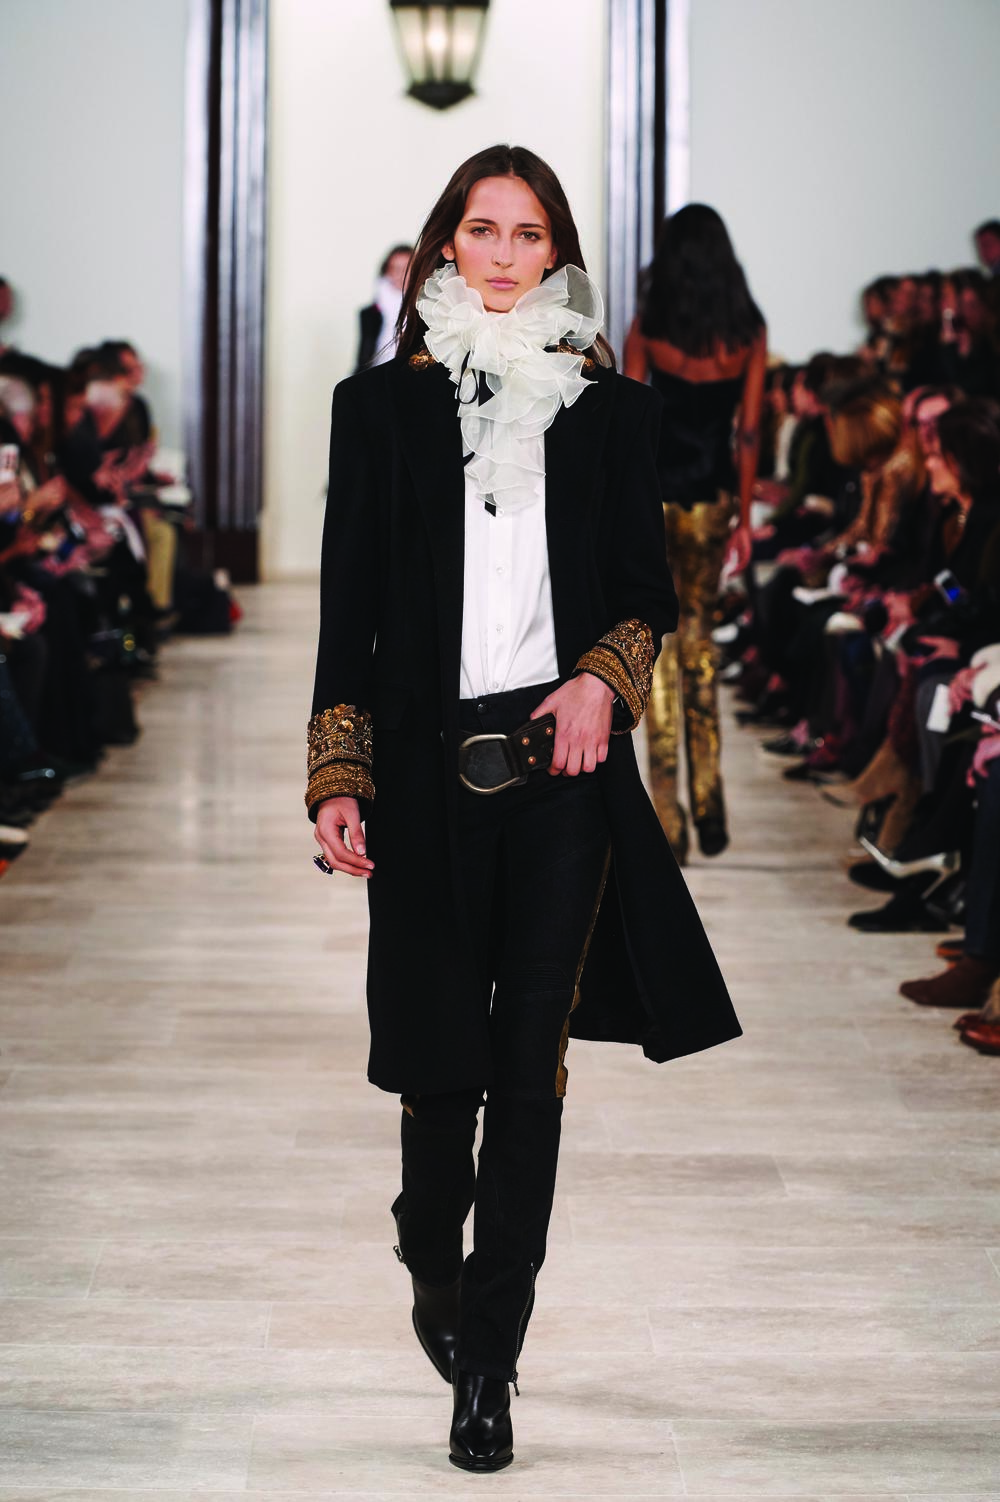 Ralph_Lauren_Fall_2016_Collection_-_Look_33.jpg_cmyk.jpg